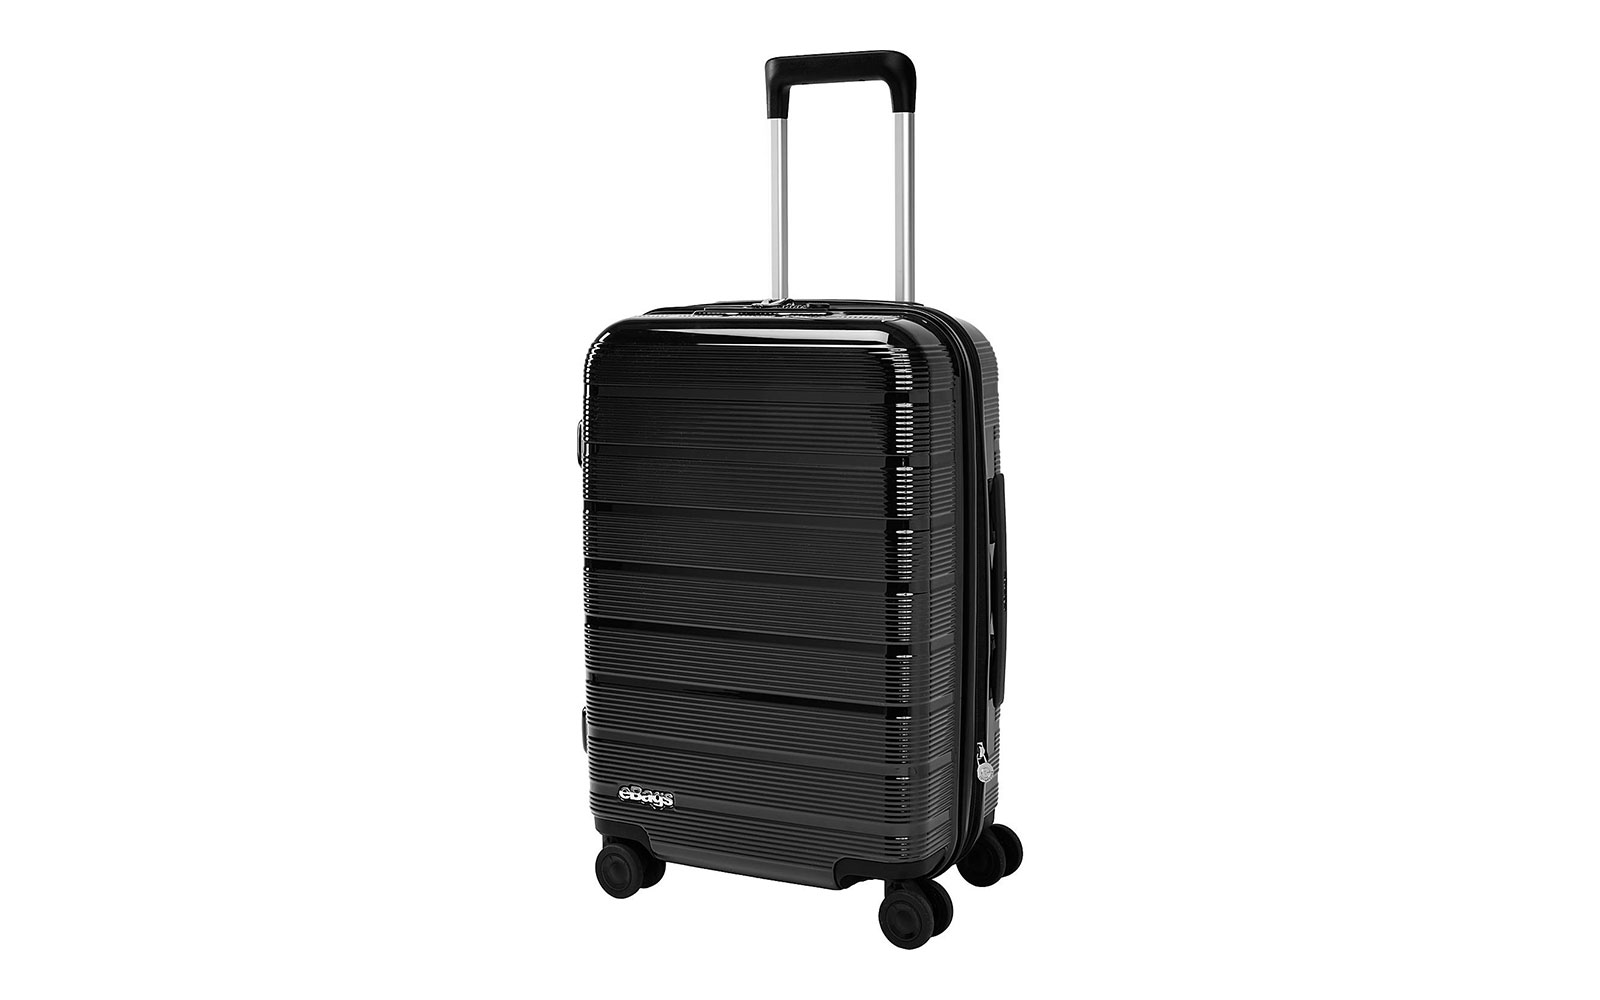 Fortis Pro Traveler Hardside Spinner Carry-On